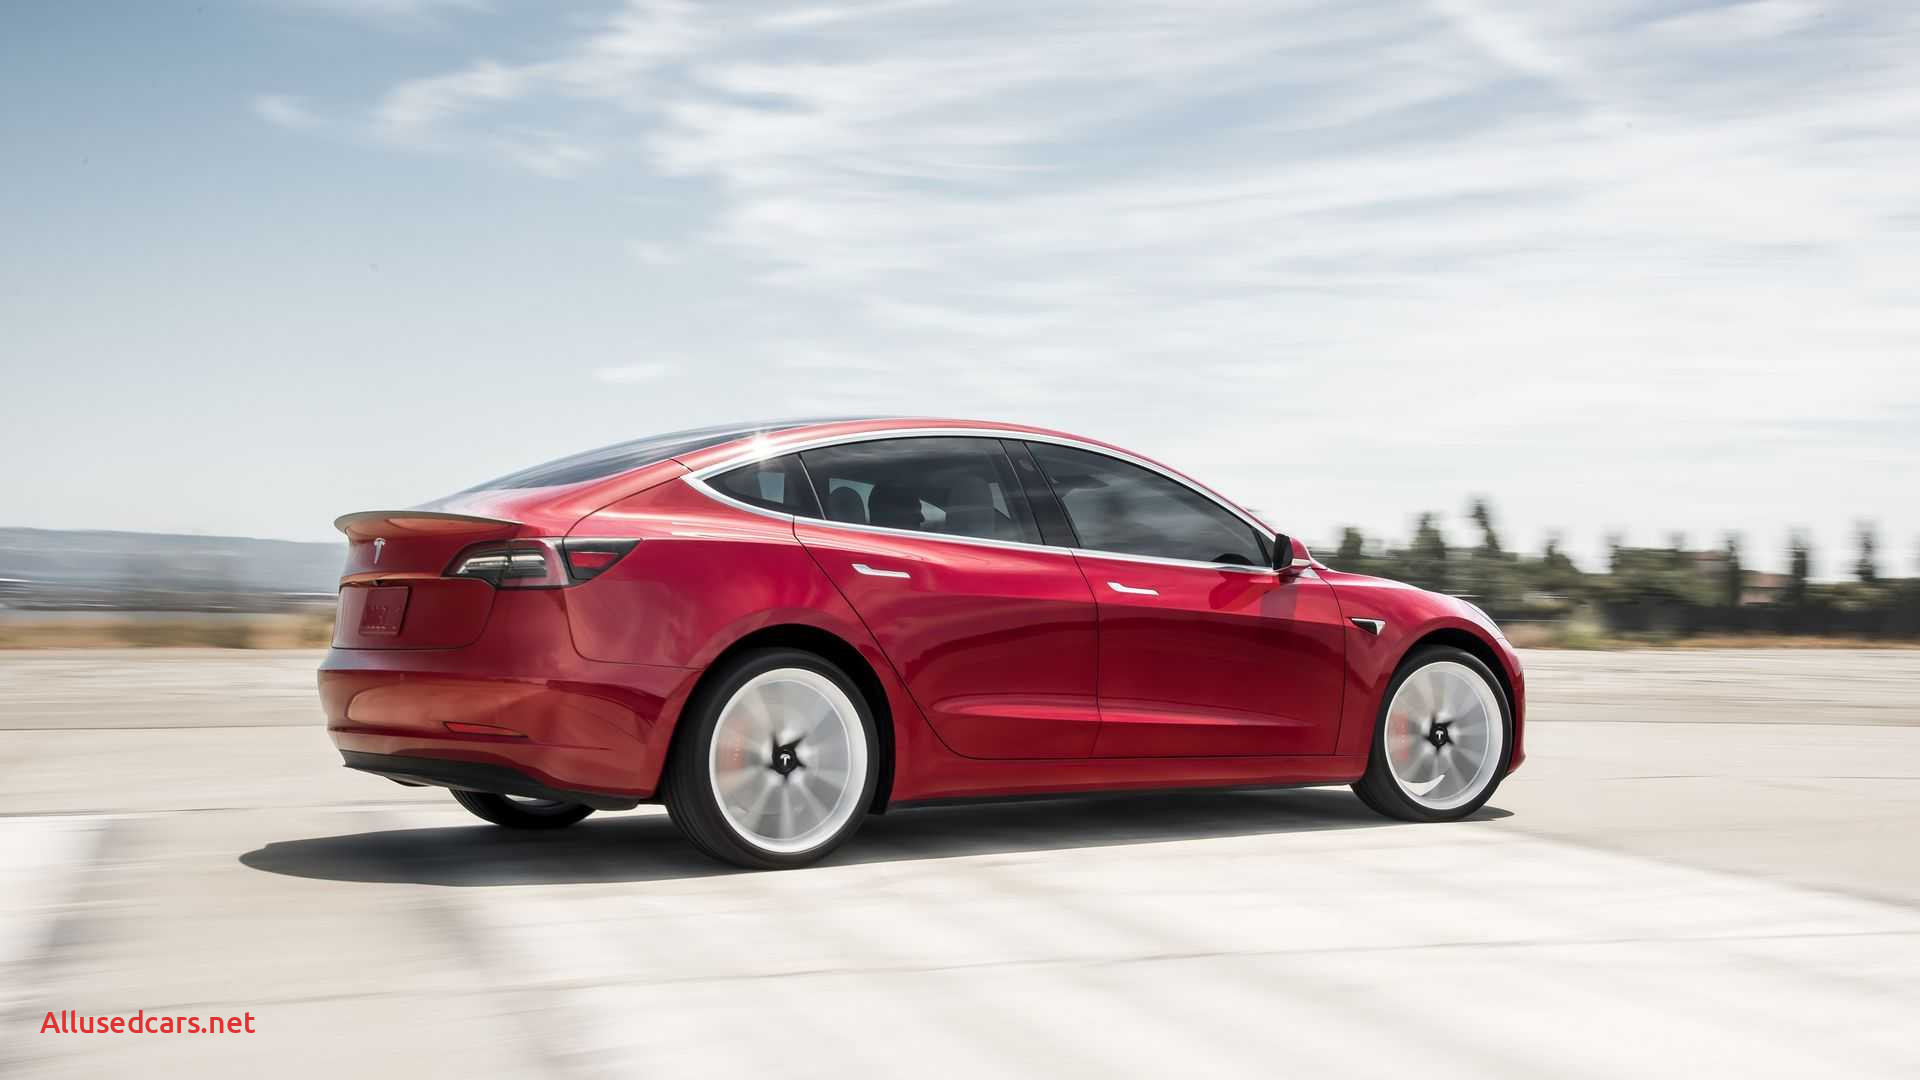 Tesla P100 Lovely Tesla Model 3 0 to 60 Mph How Quick is It Pared to Other